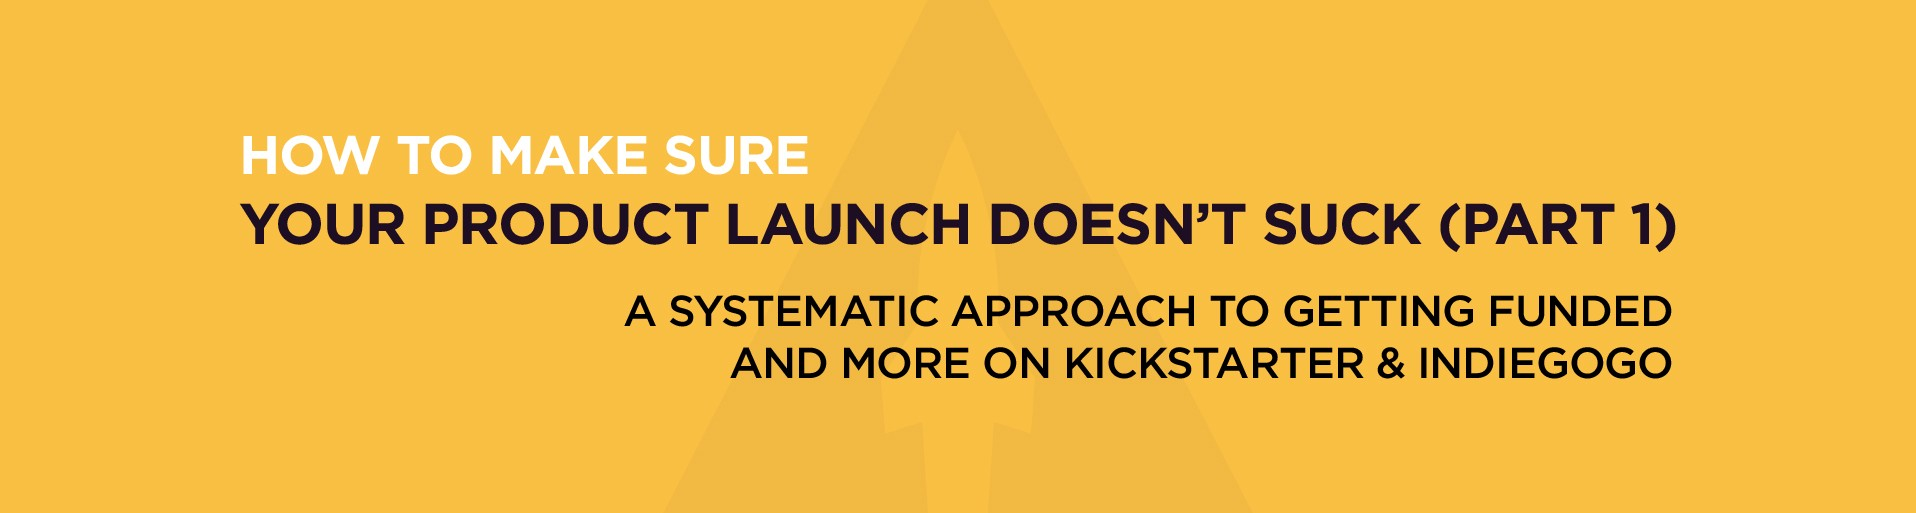 How To Make Sure Your Product Launch Doesn't Suck (Part 1)